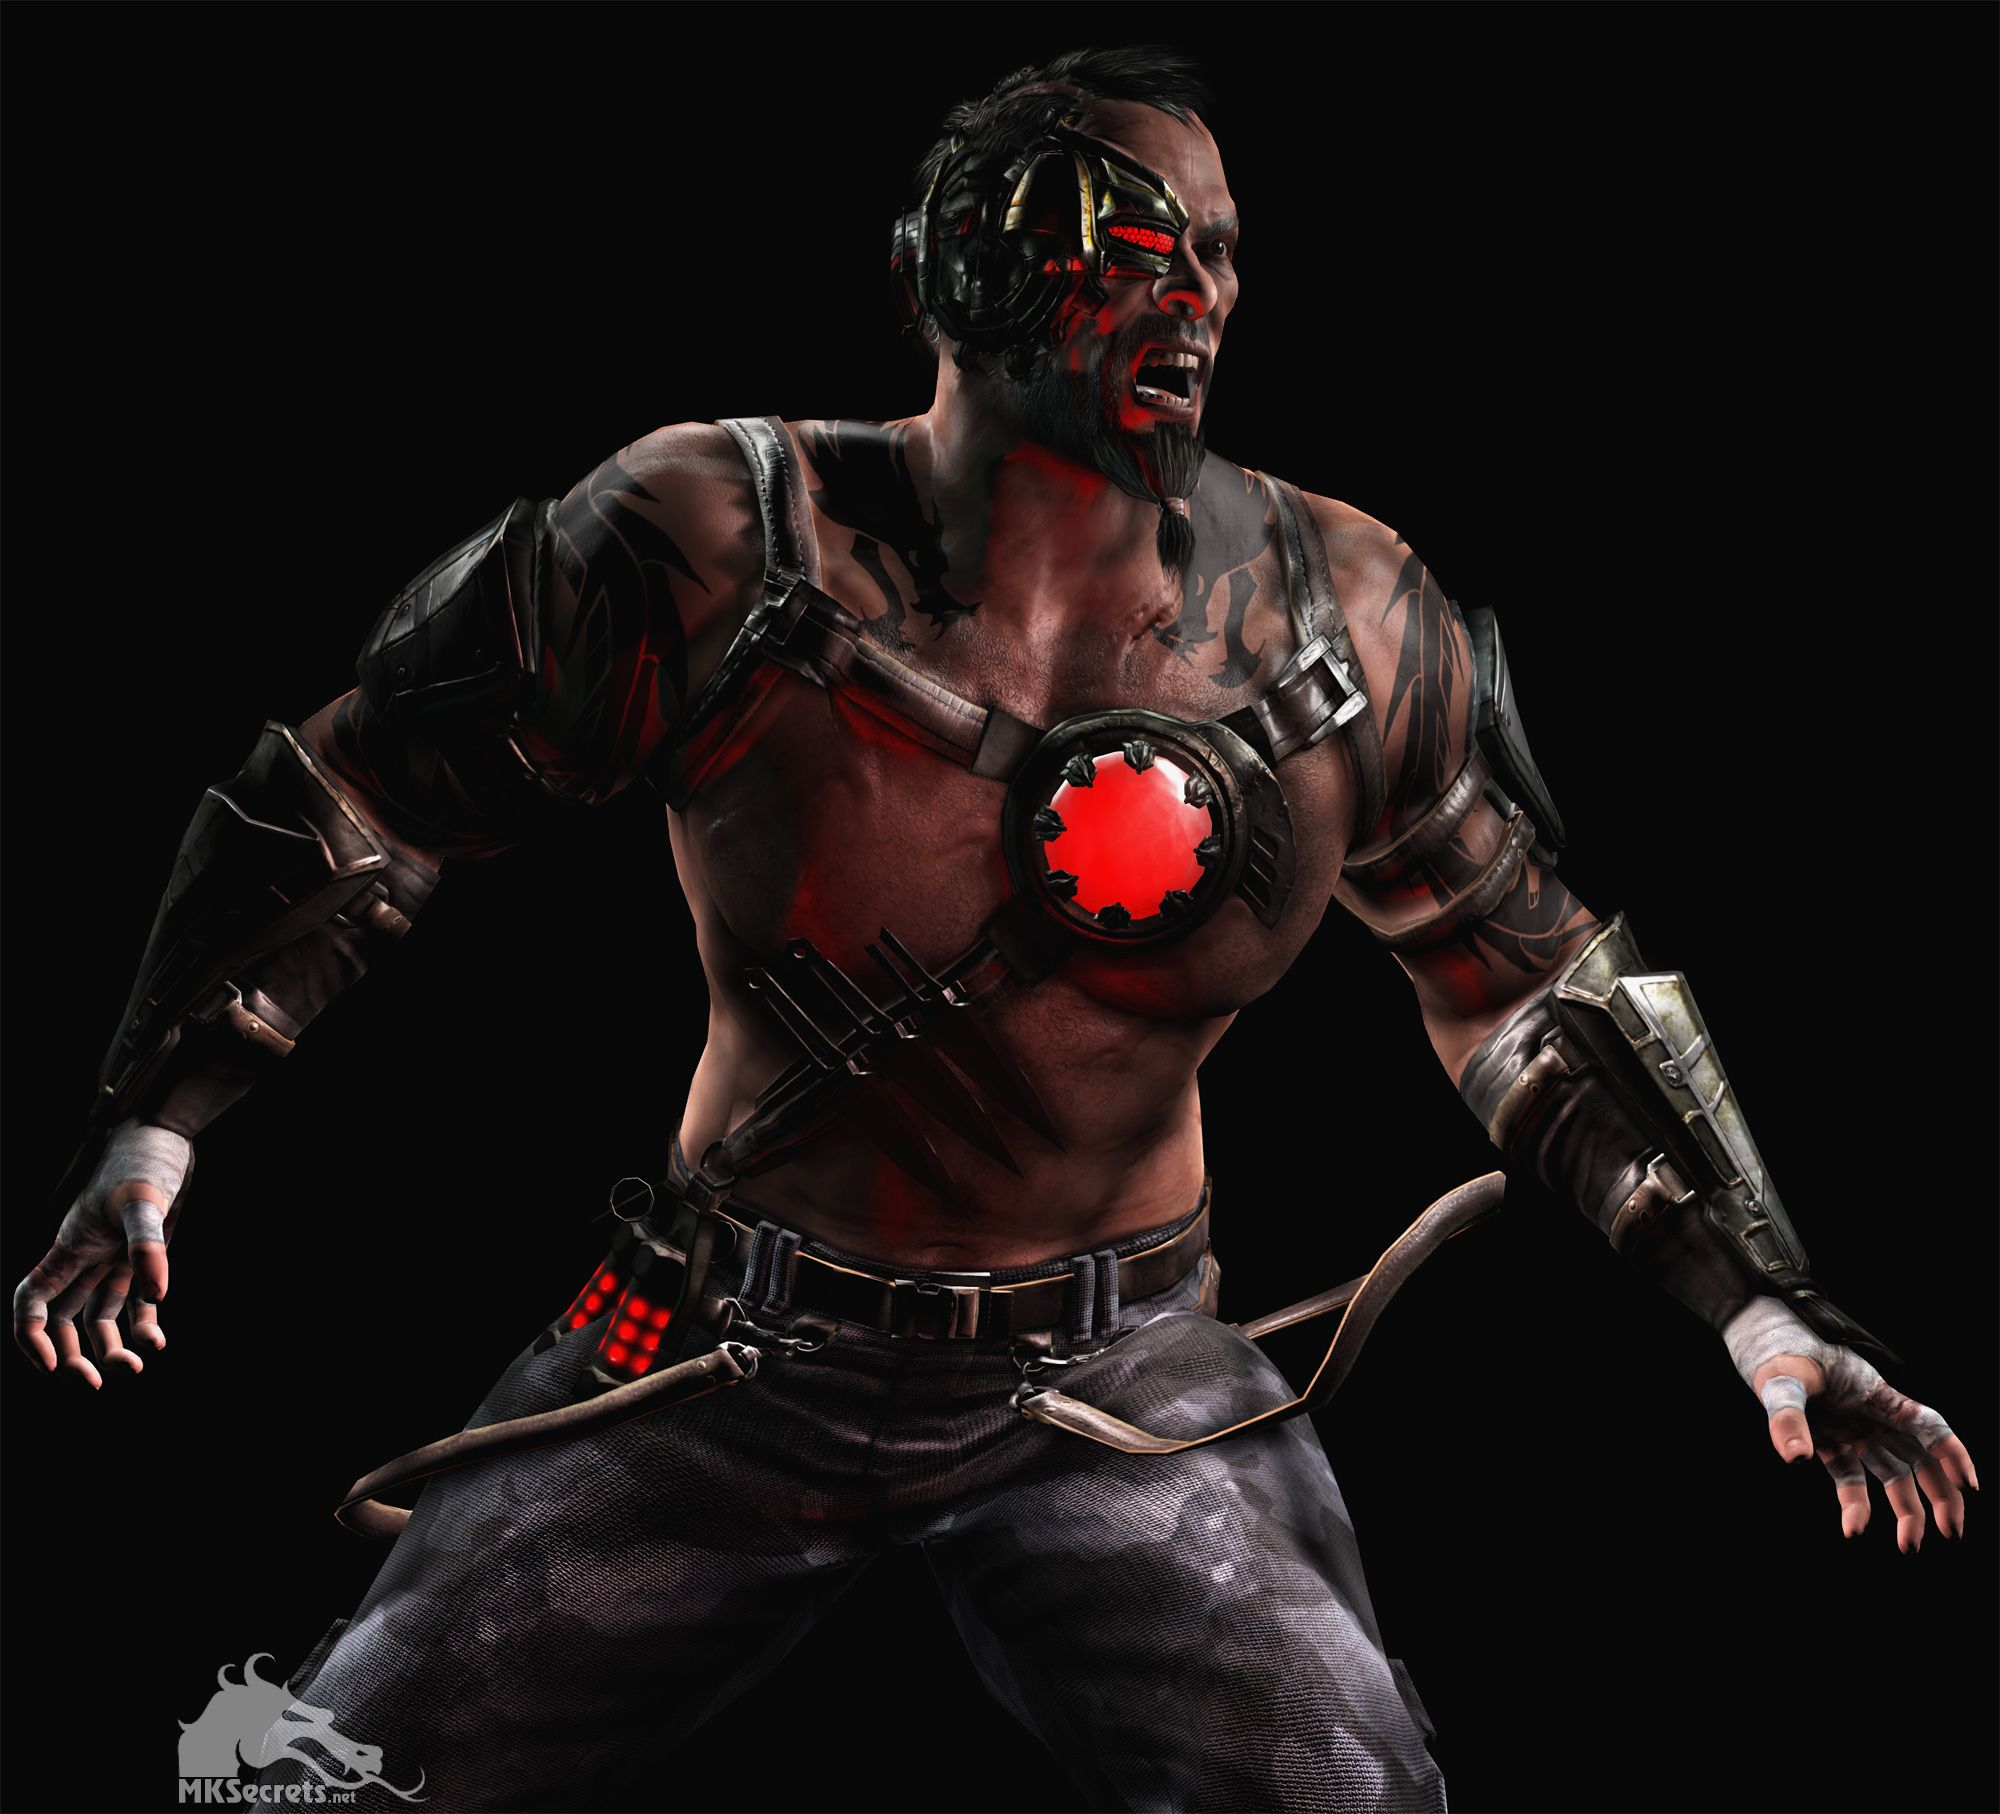 Pin on Mortal Kombat X